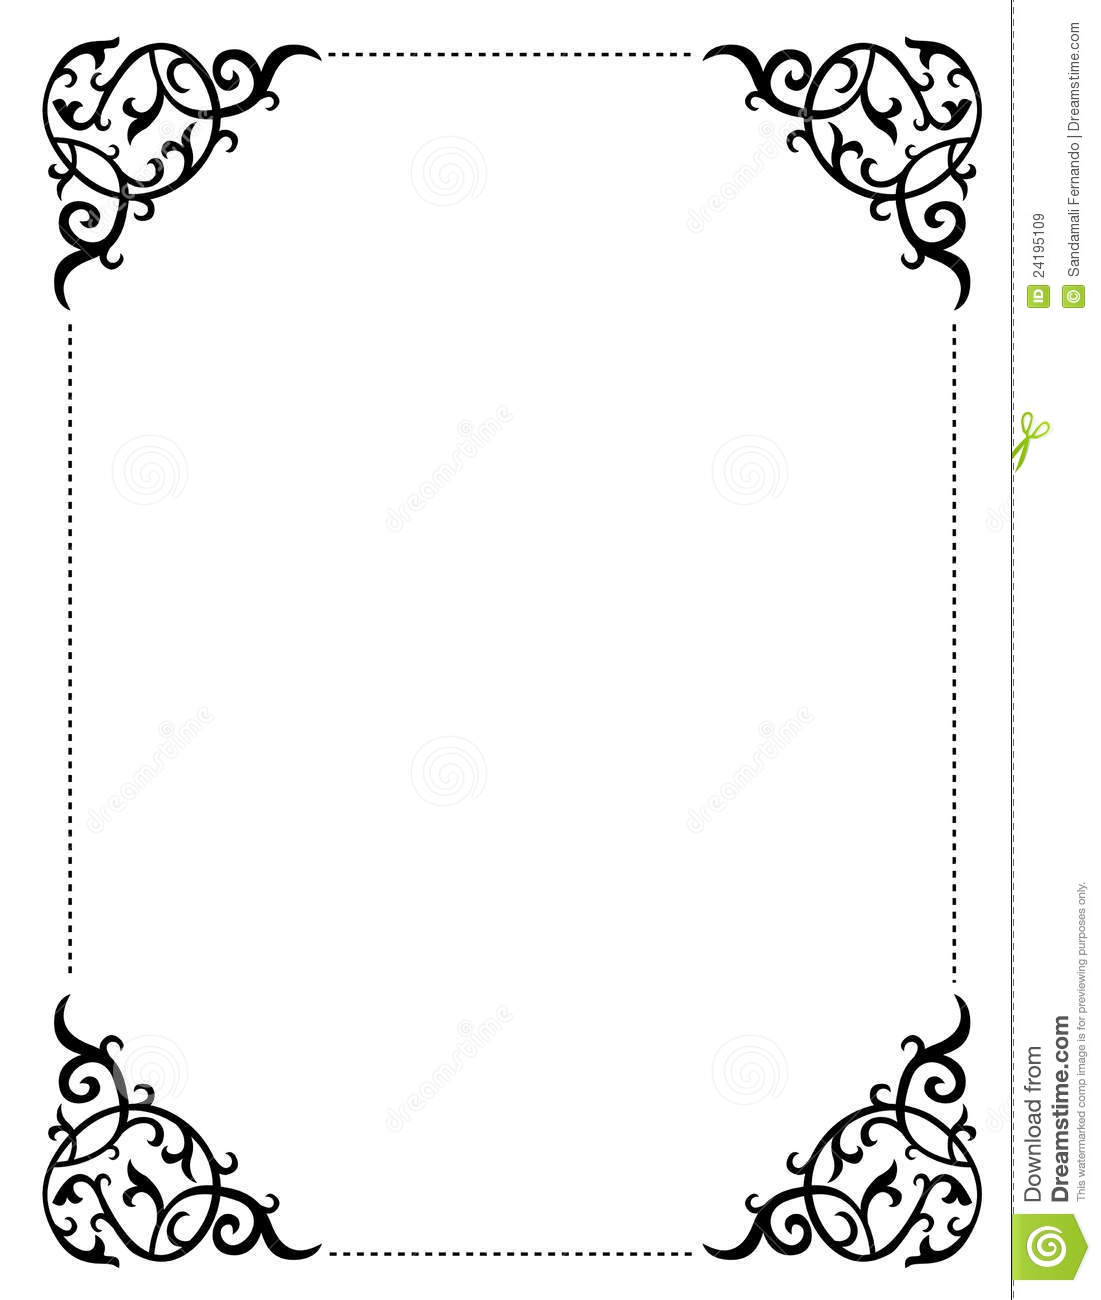 Invitation border / frame stock vector. Illustration of decorative ...